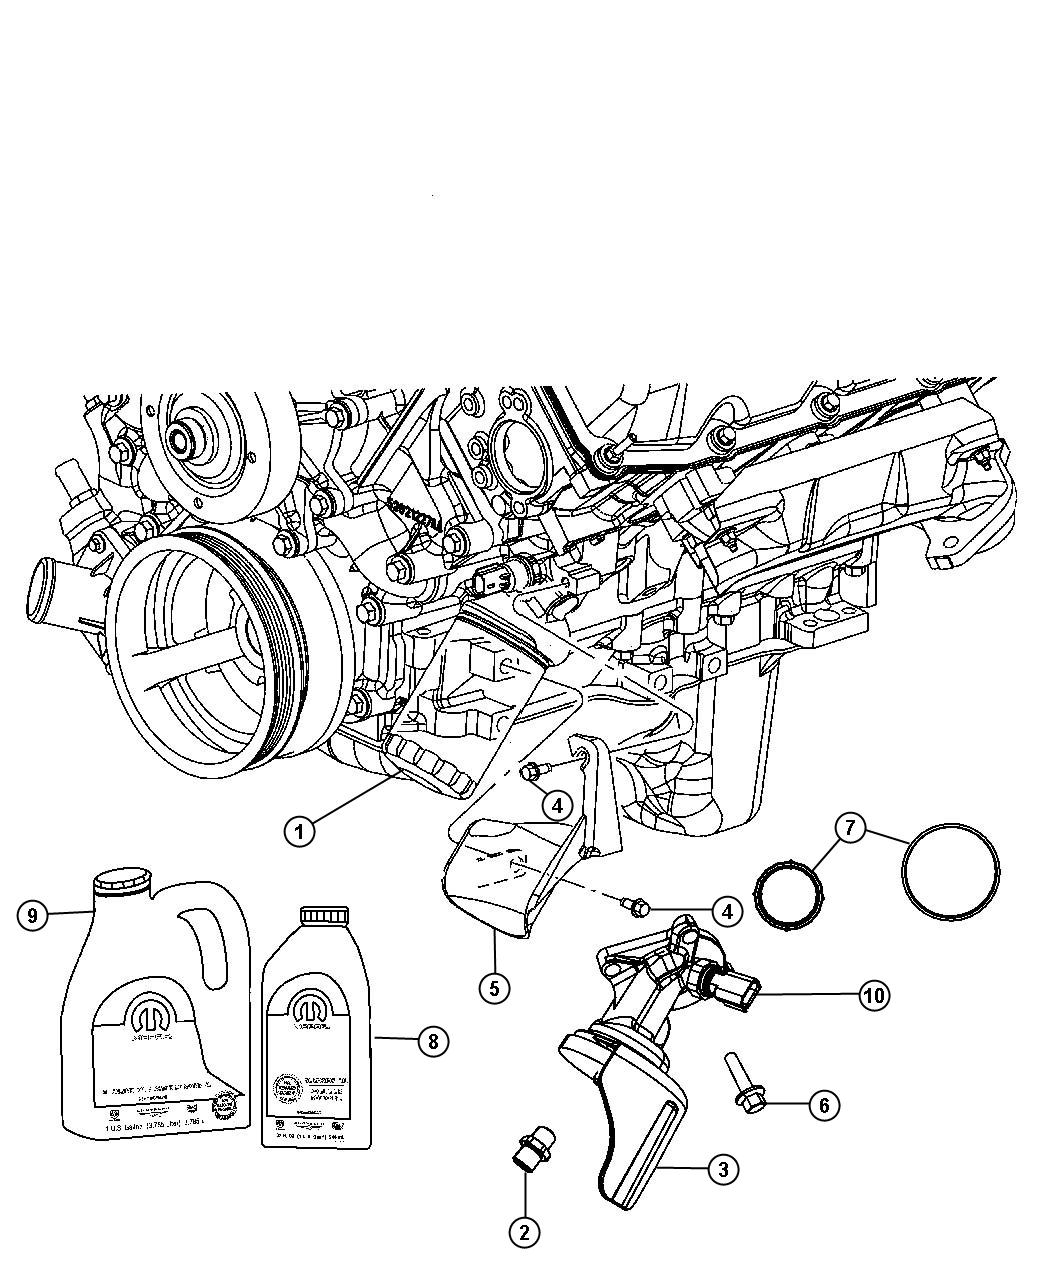 i2239523  L Hemi Engine Gasket Diagram on jeep grand cherokee, jeep cherokee, performance parts, engine pulley part number, engine pulley schematic, v8 horsepower, intake manifold upgrade,